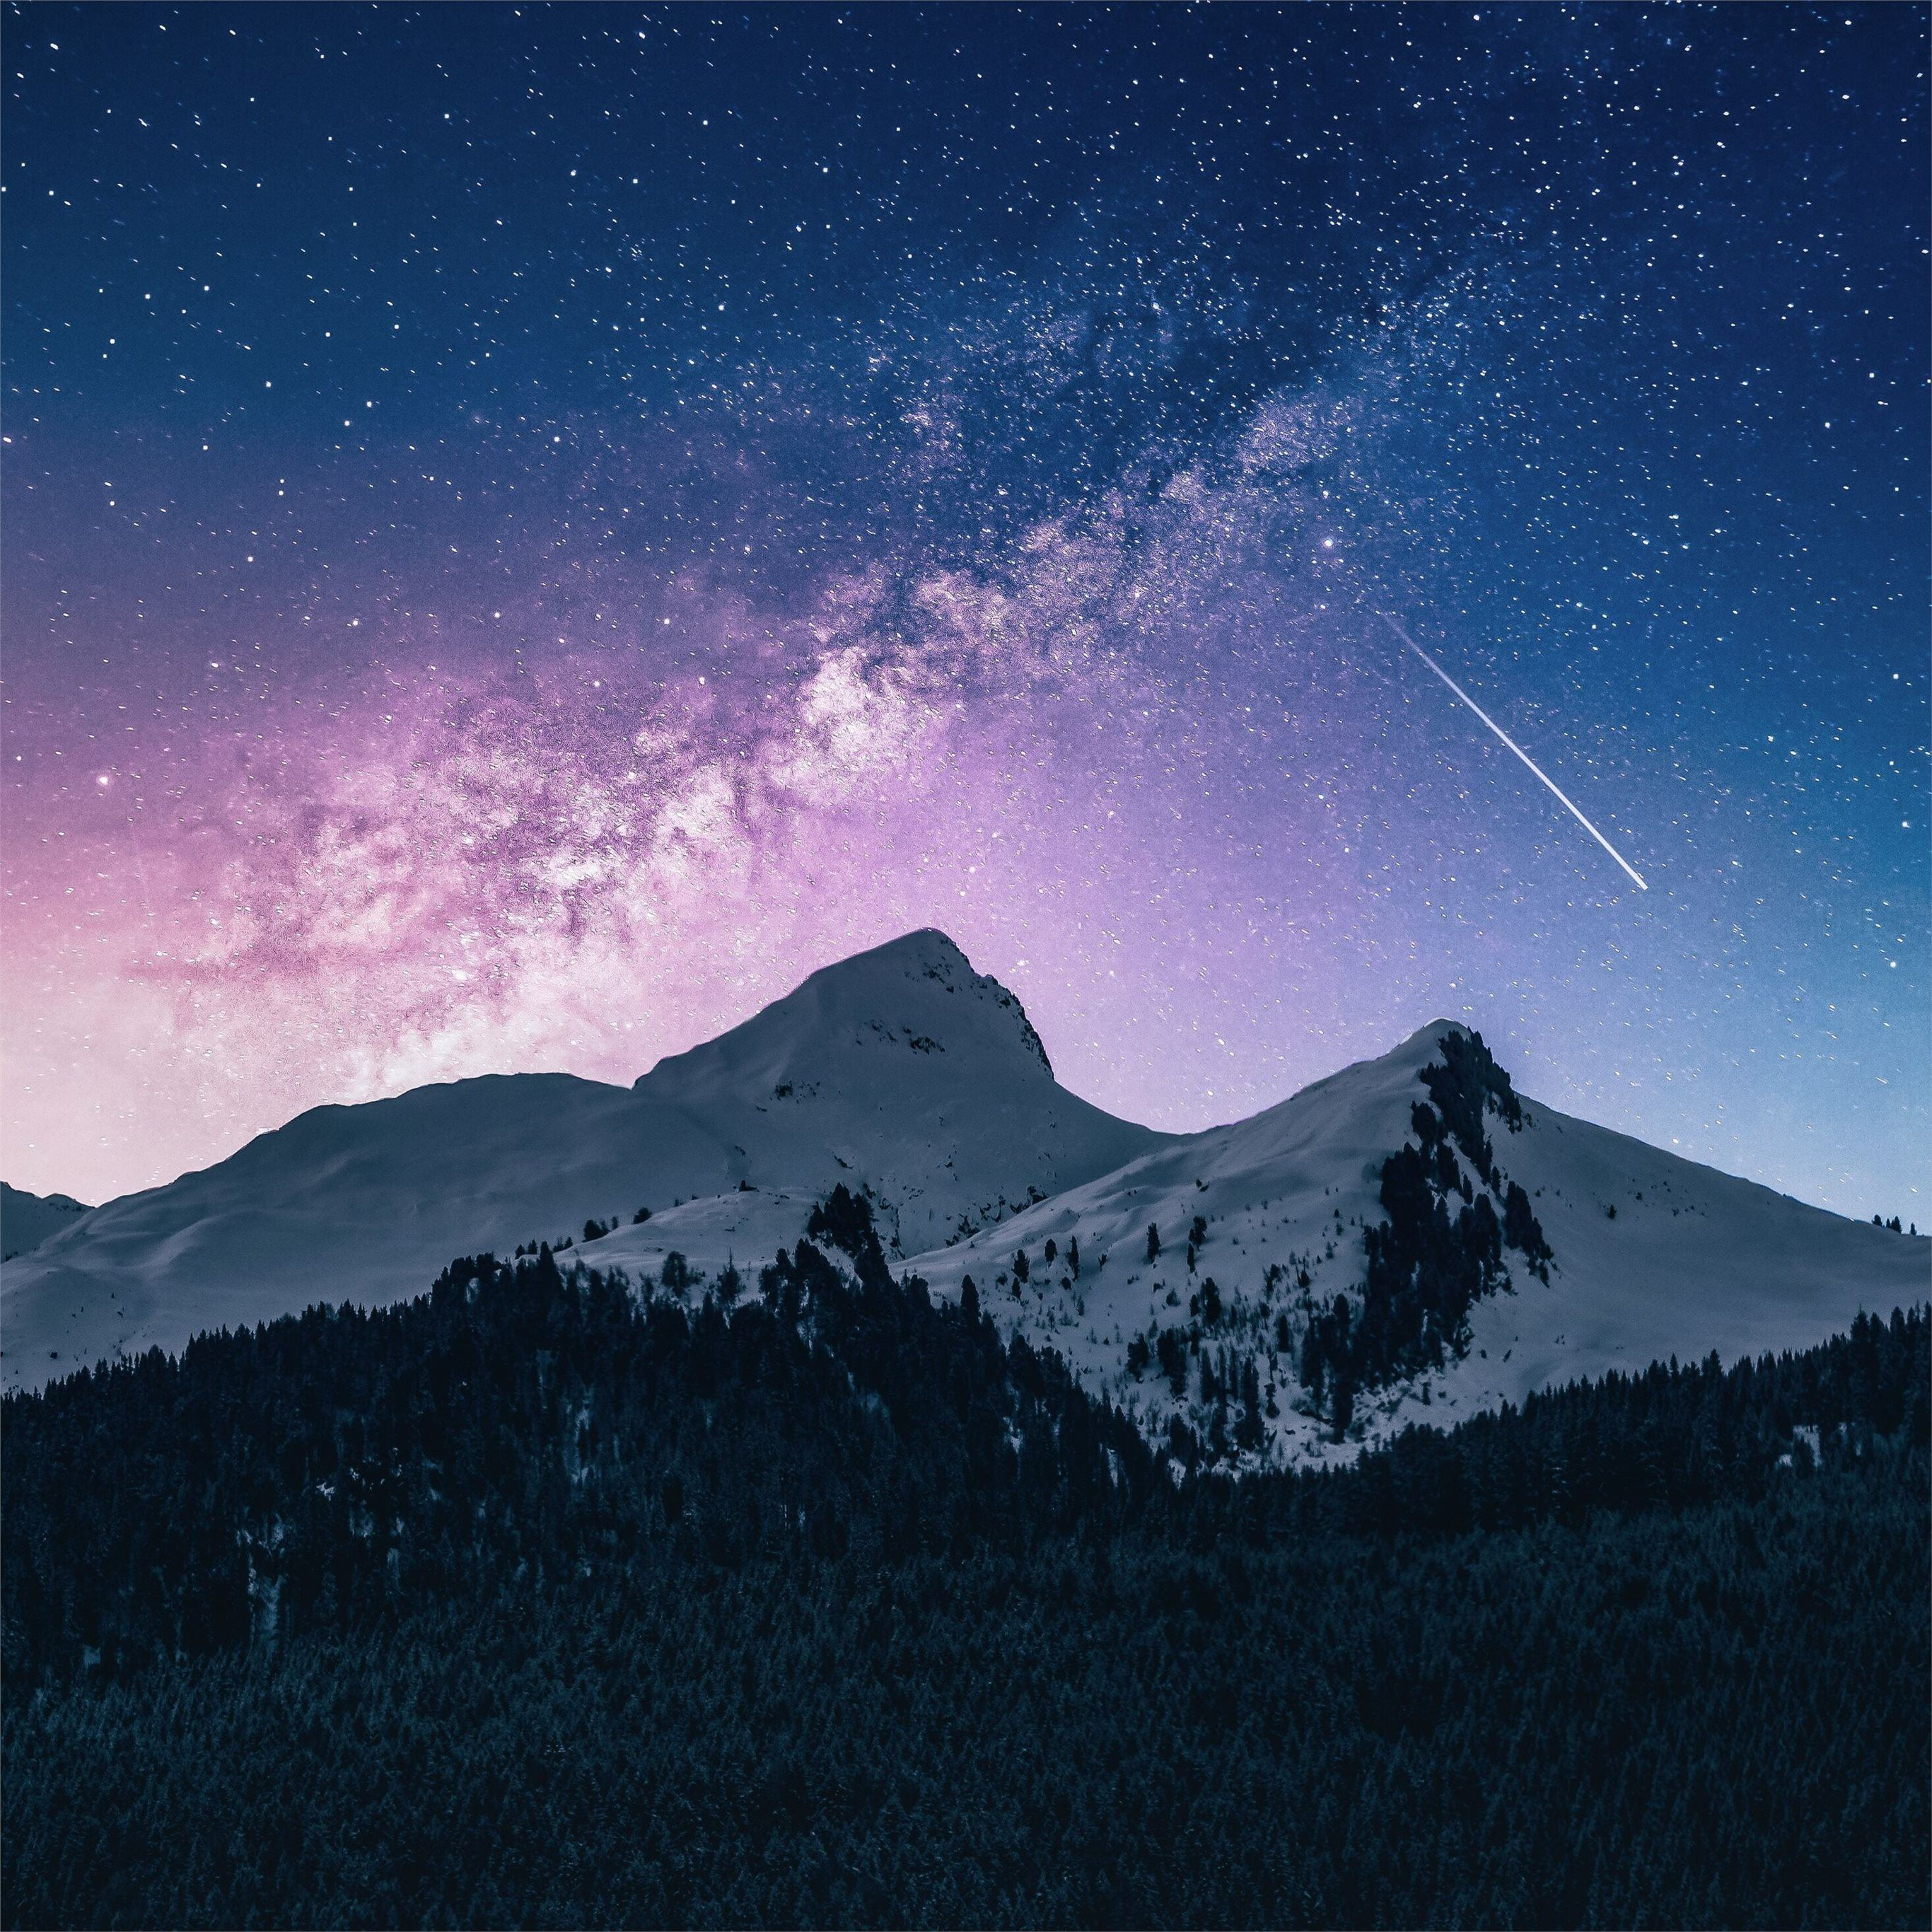 Landscape Outdoor Mountains Galaxy 4k Ipad Pro Wallpapers Free Download